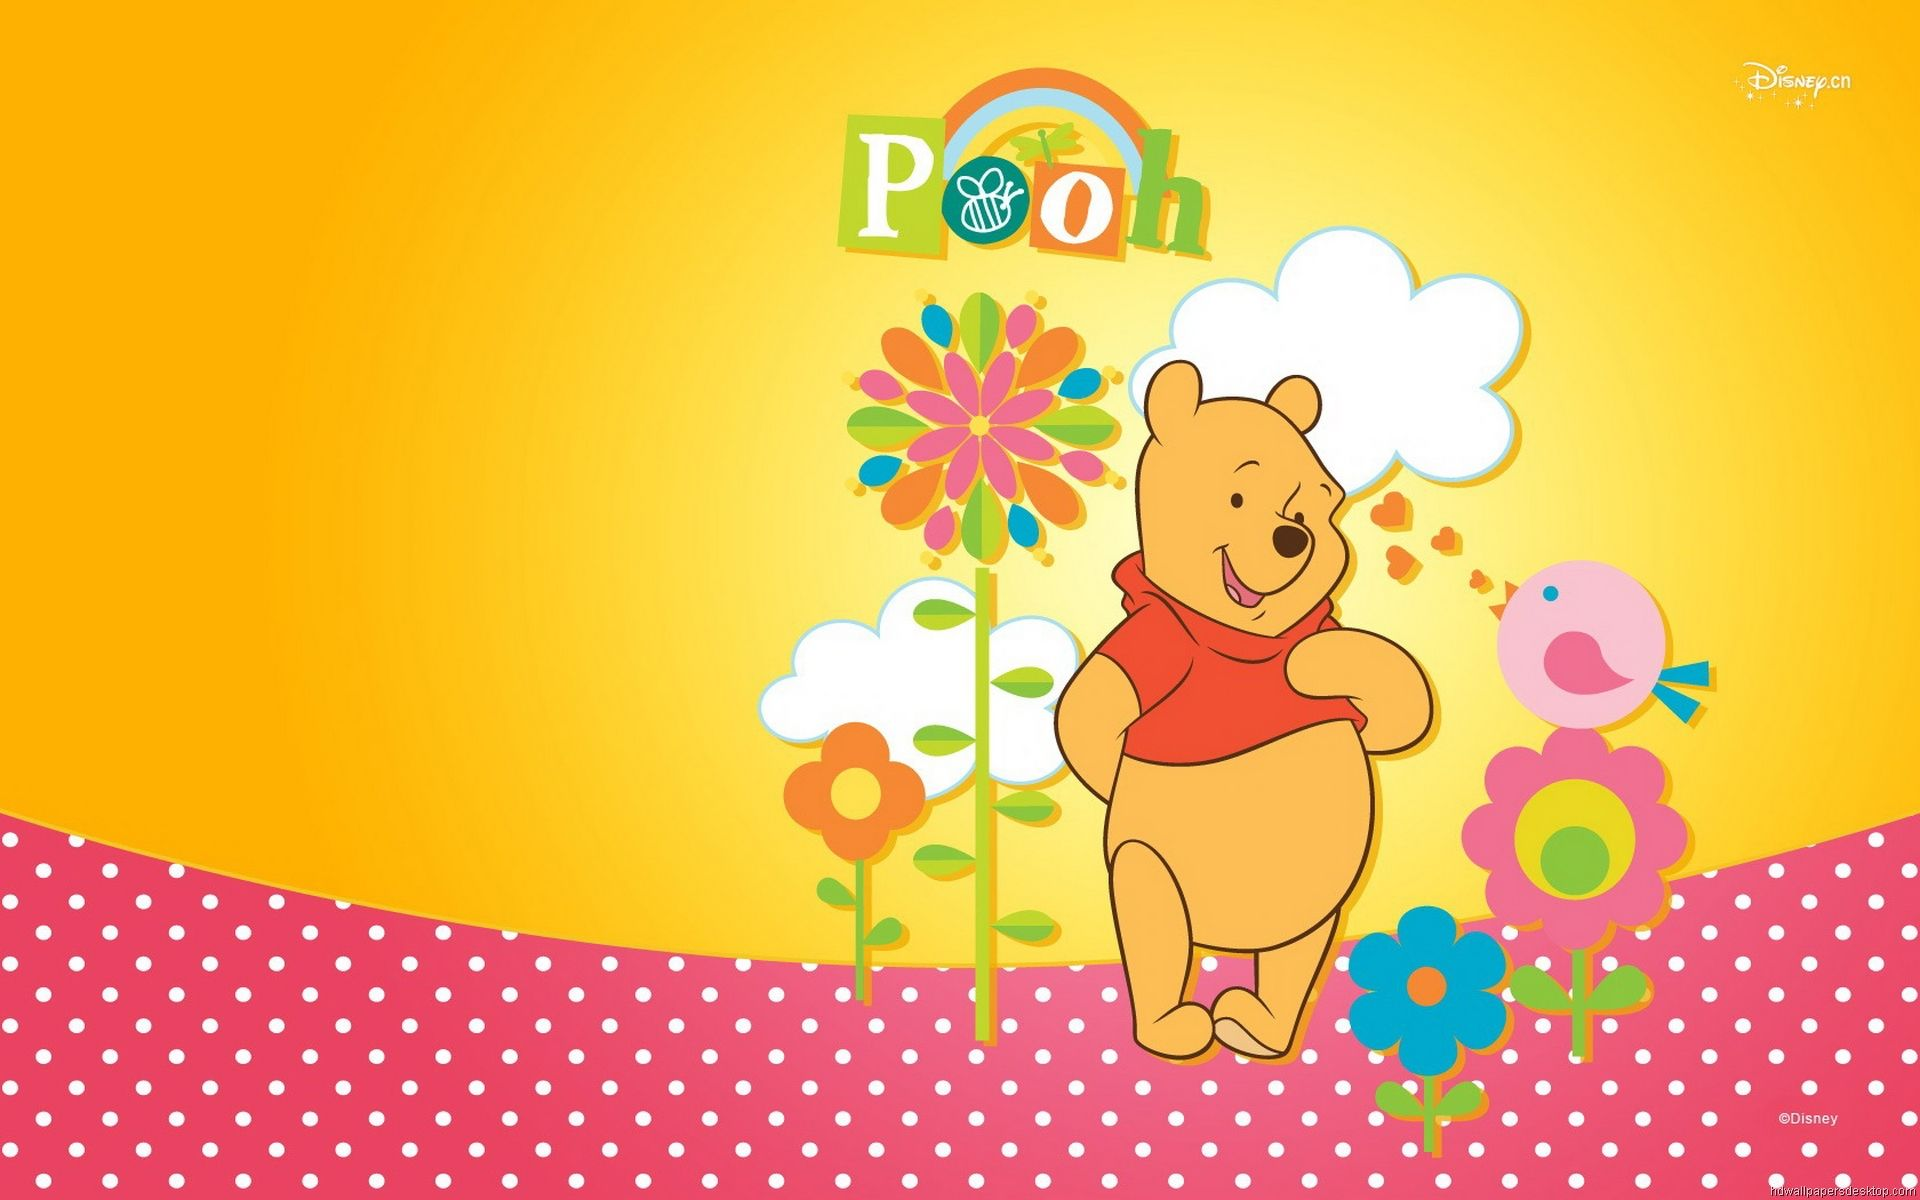 Winnie pooh wallpapers winnie pooh awesome photos collection 1024 winnie pooh wallpapers winnie pooh awesome photos collection 1024768 imagenes de winnie pooh wallpapers voltagebd Gallery